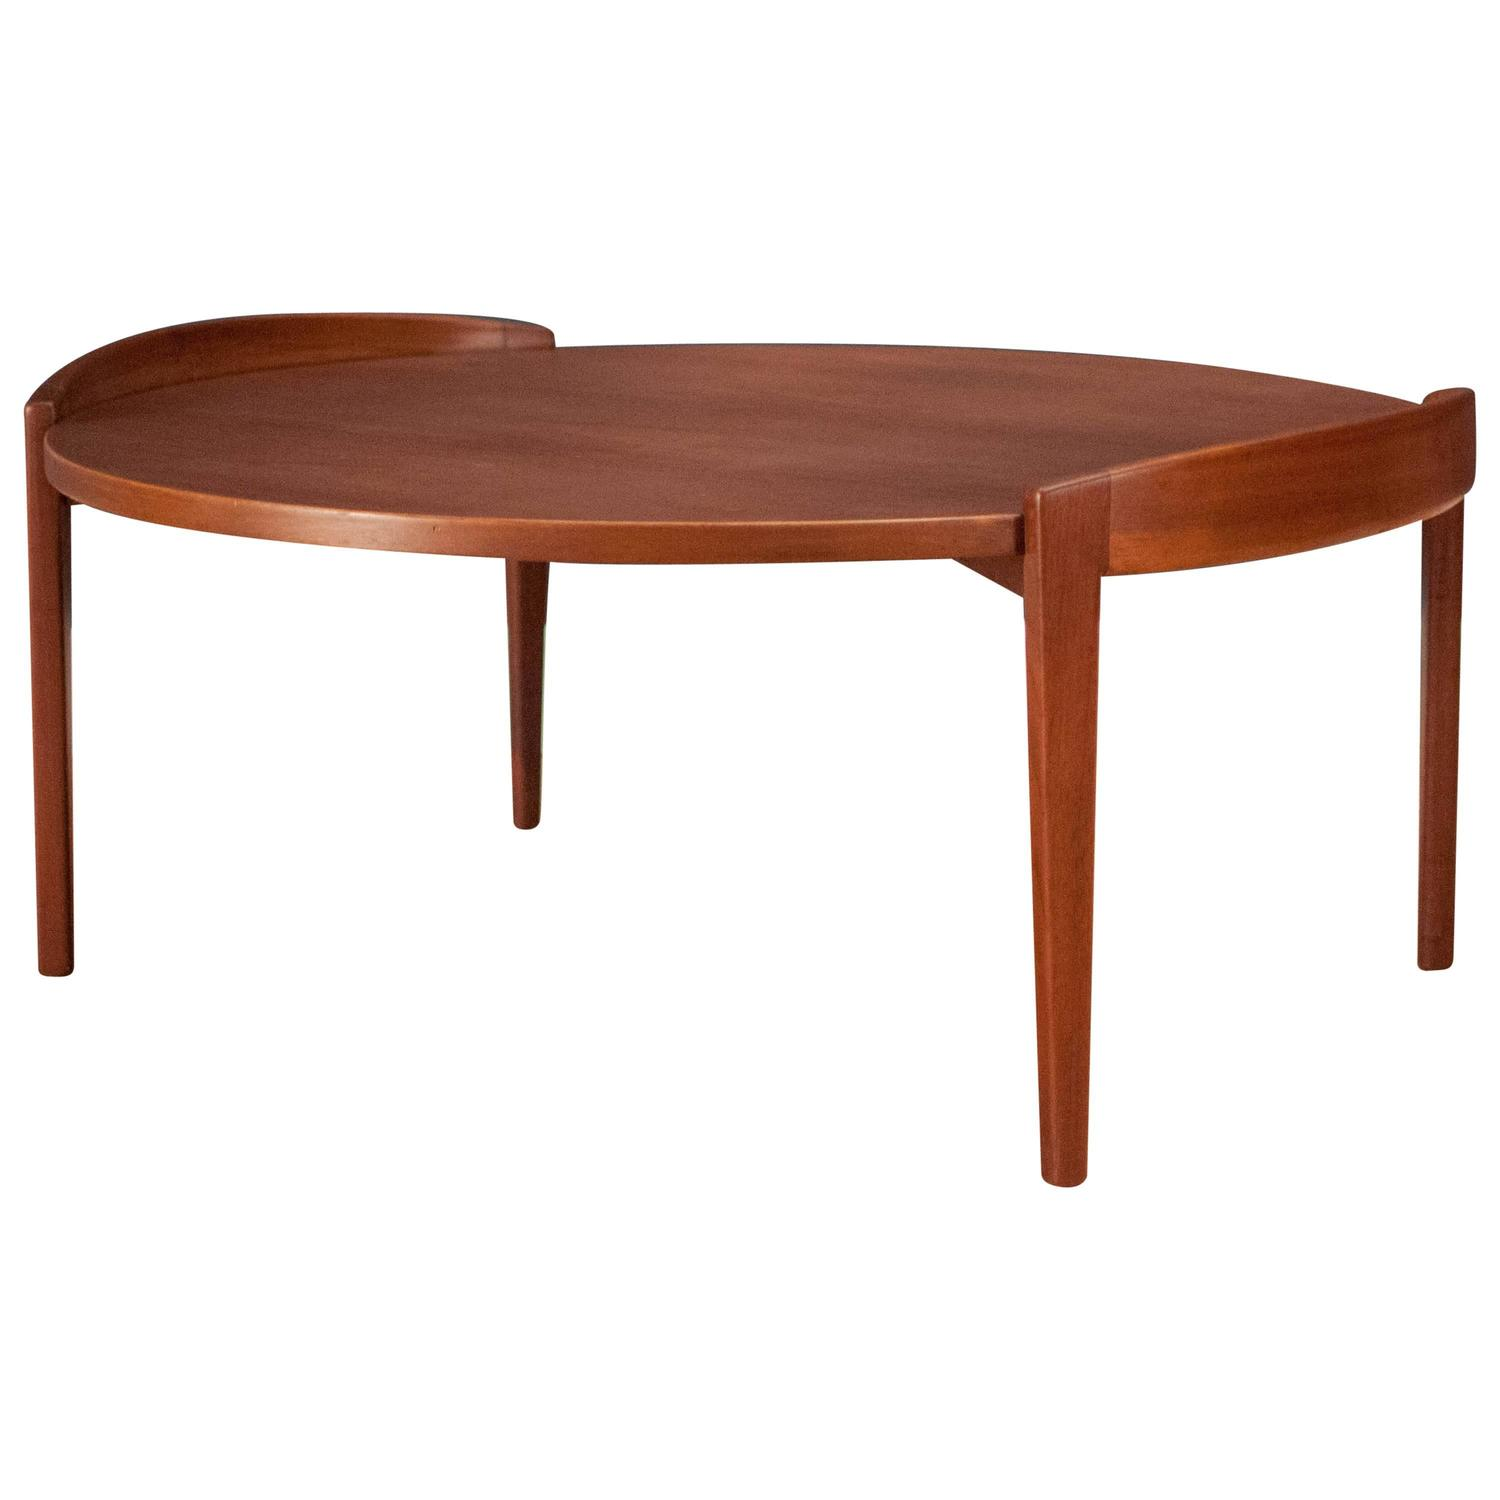 Jens Risom Coffee and Cocktail Tables 27 For Sale at 1stdibs